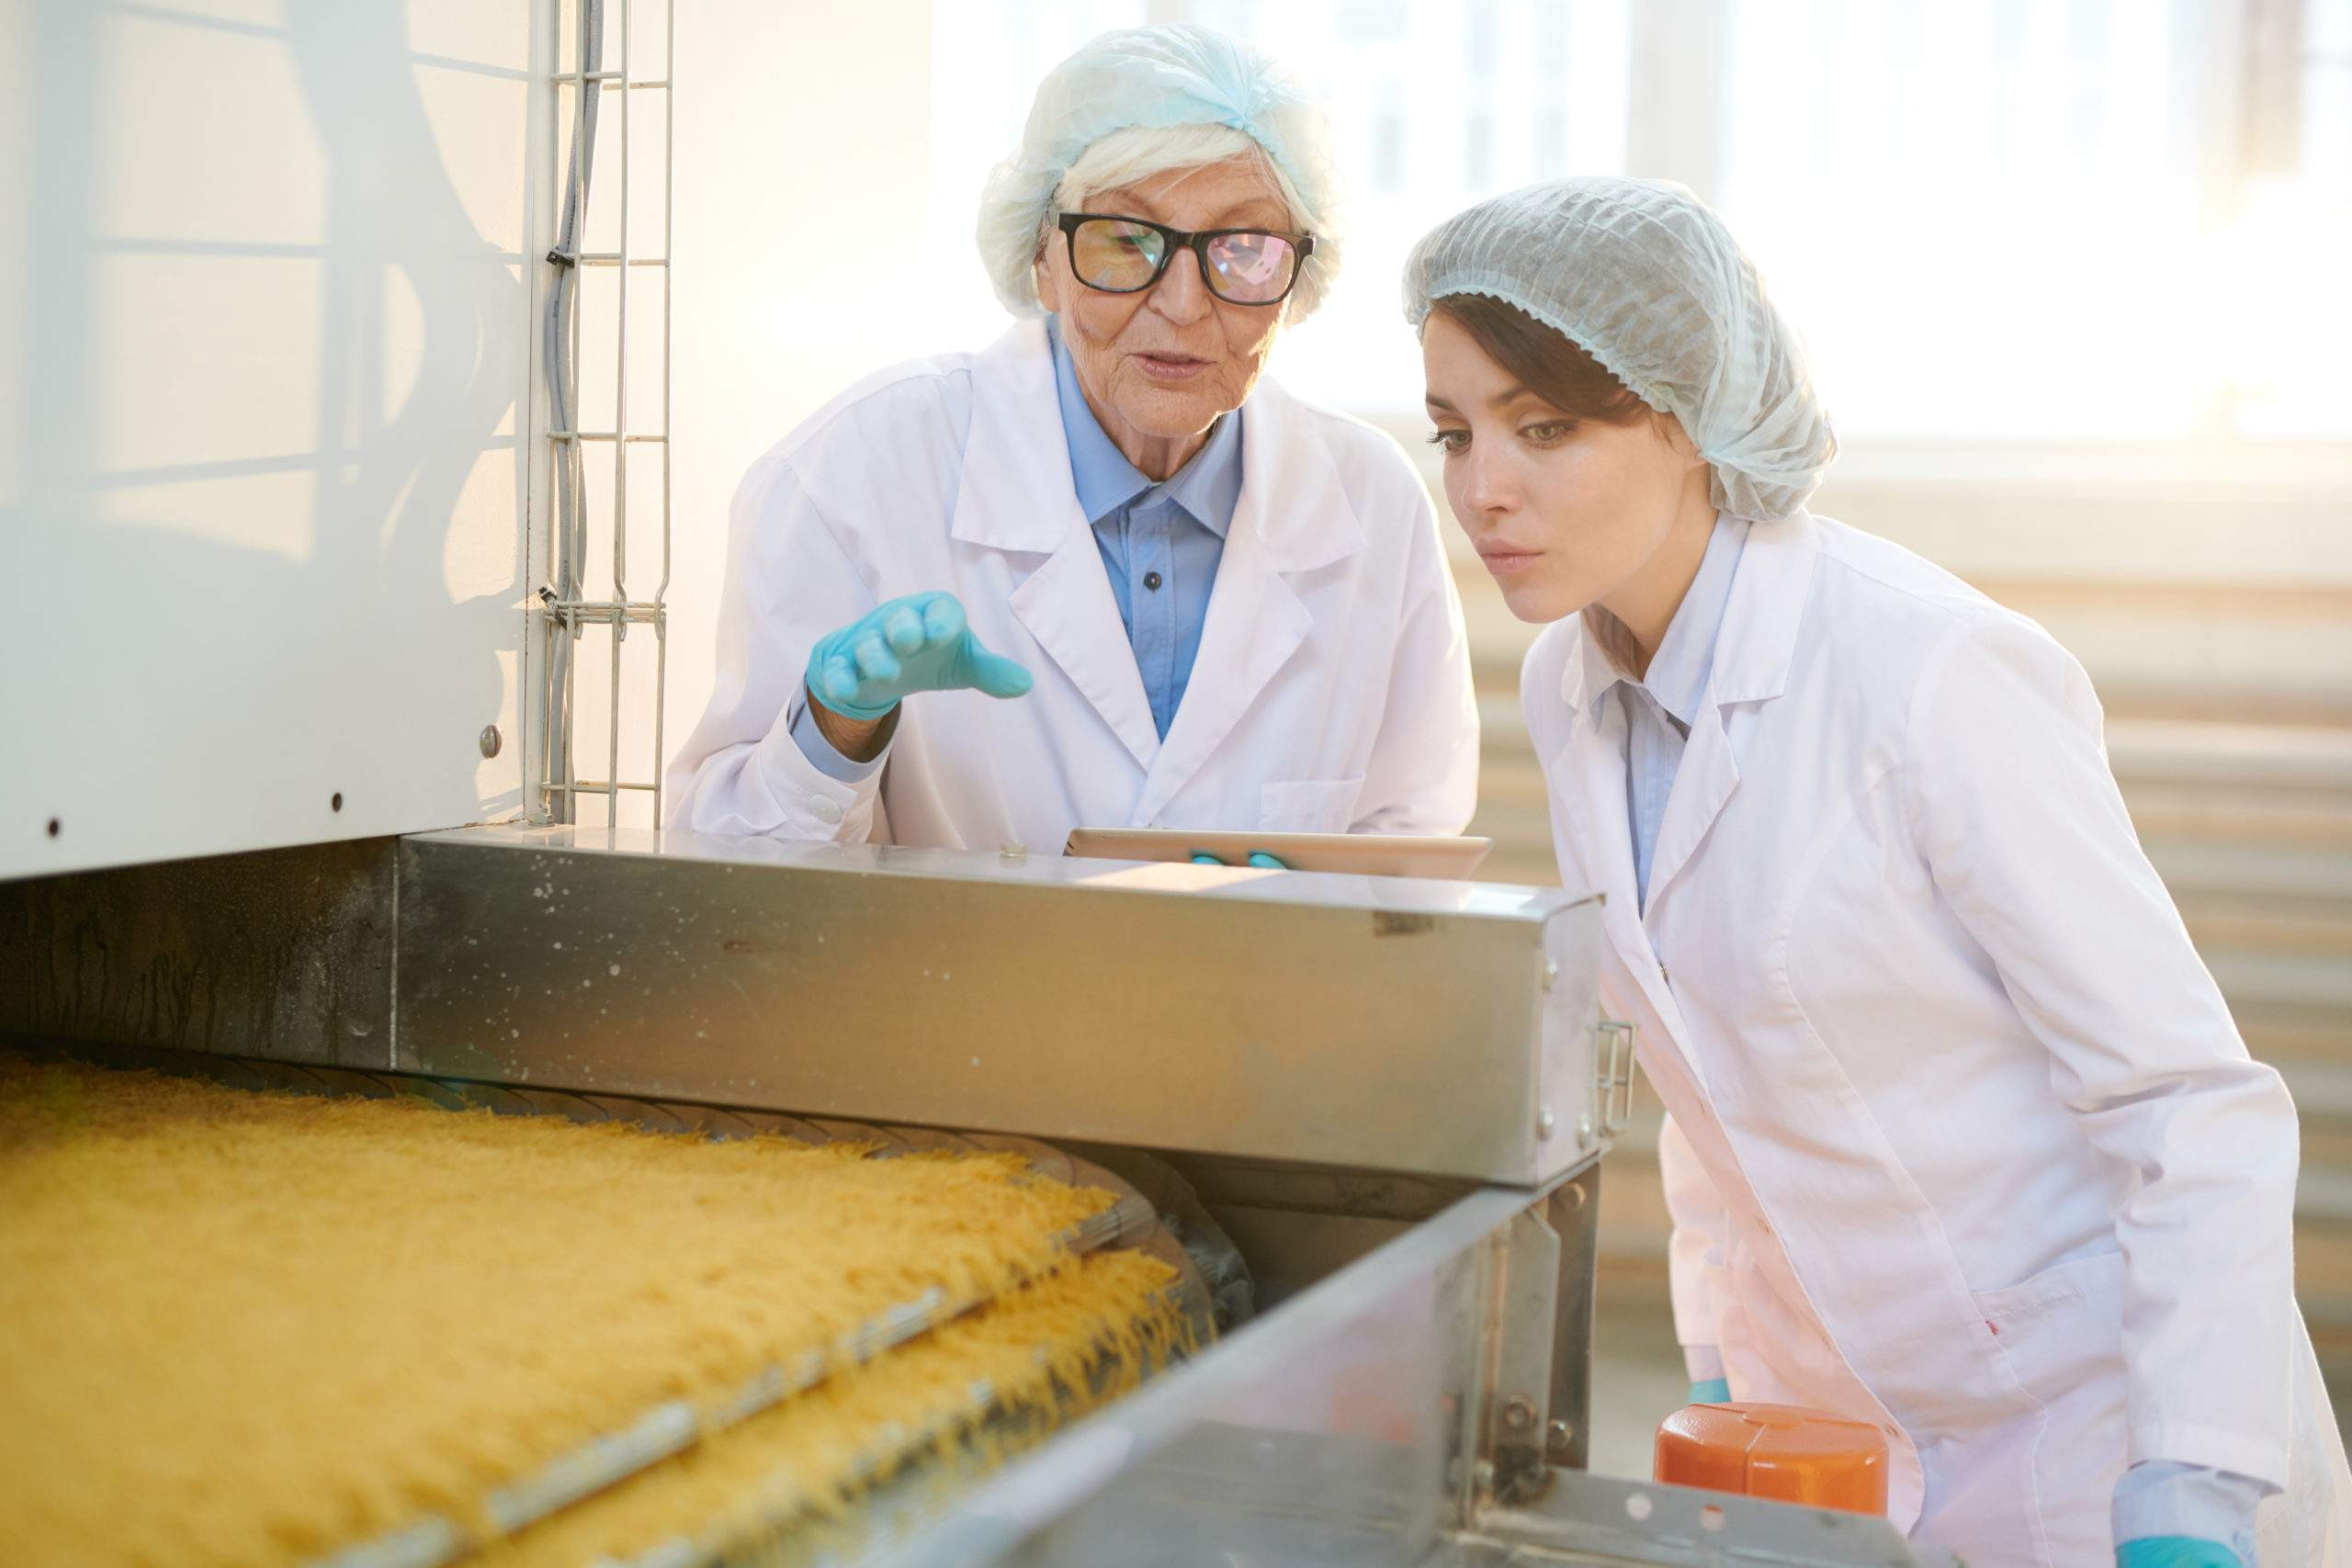 Workers Inspecting Food Production